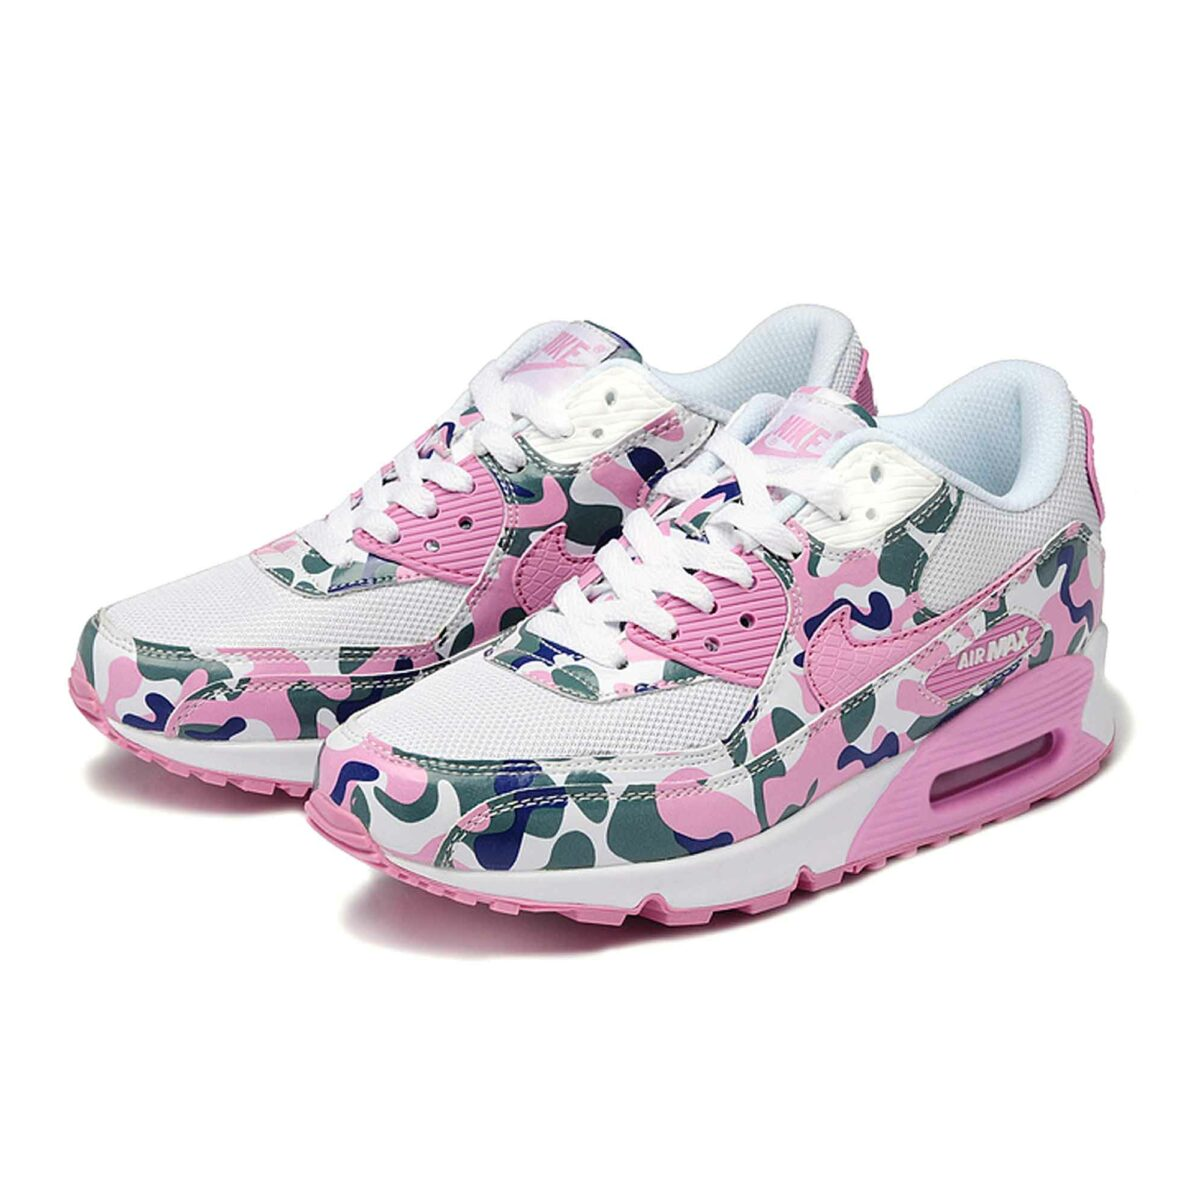 nike air max 90 white grey rose camouflage купить